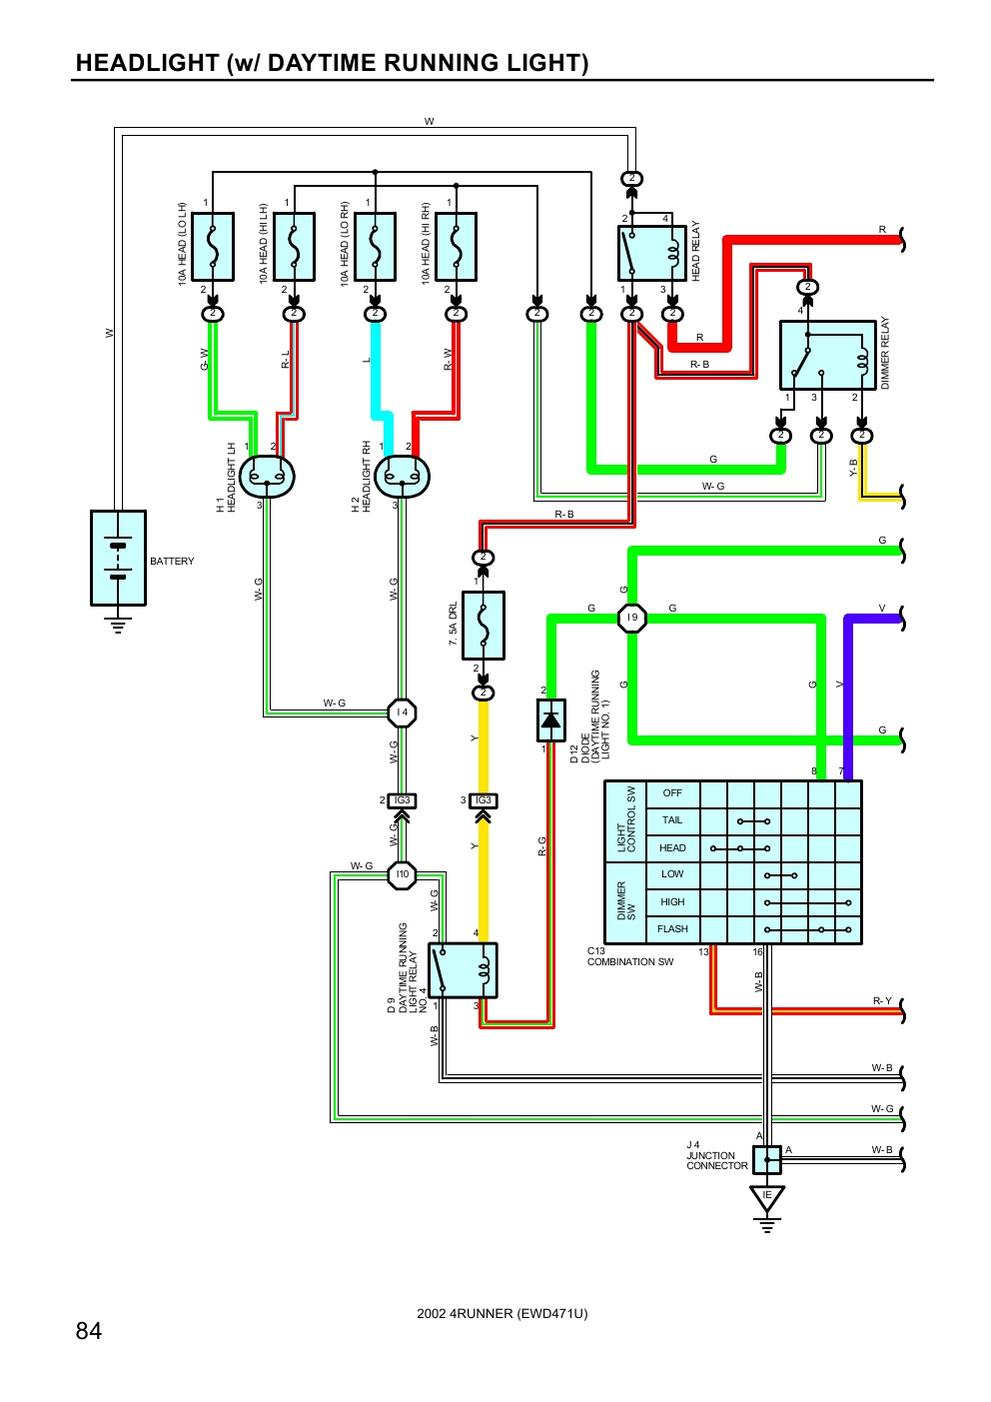 Tacoma Wiring Diagrams | Wiring Diagram on trailer wiring harness, toyota engine wiring harness, toyota solara wiring harness, toyota tacoma wiring switch, toyota tacoma trailer hitch wiring, dodge ram 1500 wiring harness, toyota stereo wiring harness, pontiac grand am wiring harness, toyota tundra wiring harness, toyota pickup wiring harness, nissan titan wiring harness, jeep wiring harness, toyota previa wiring harness, toyota yaris wiring harness, toyota echo wiring harness, toyota sequoia wiring harness, mustang wiring harness, toyota corolla wiring harness, suzuki samurai wiring harness, toyota tacoma trailer wiring diagram,